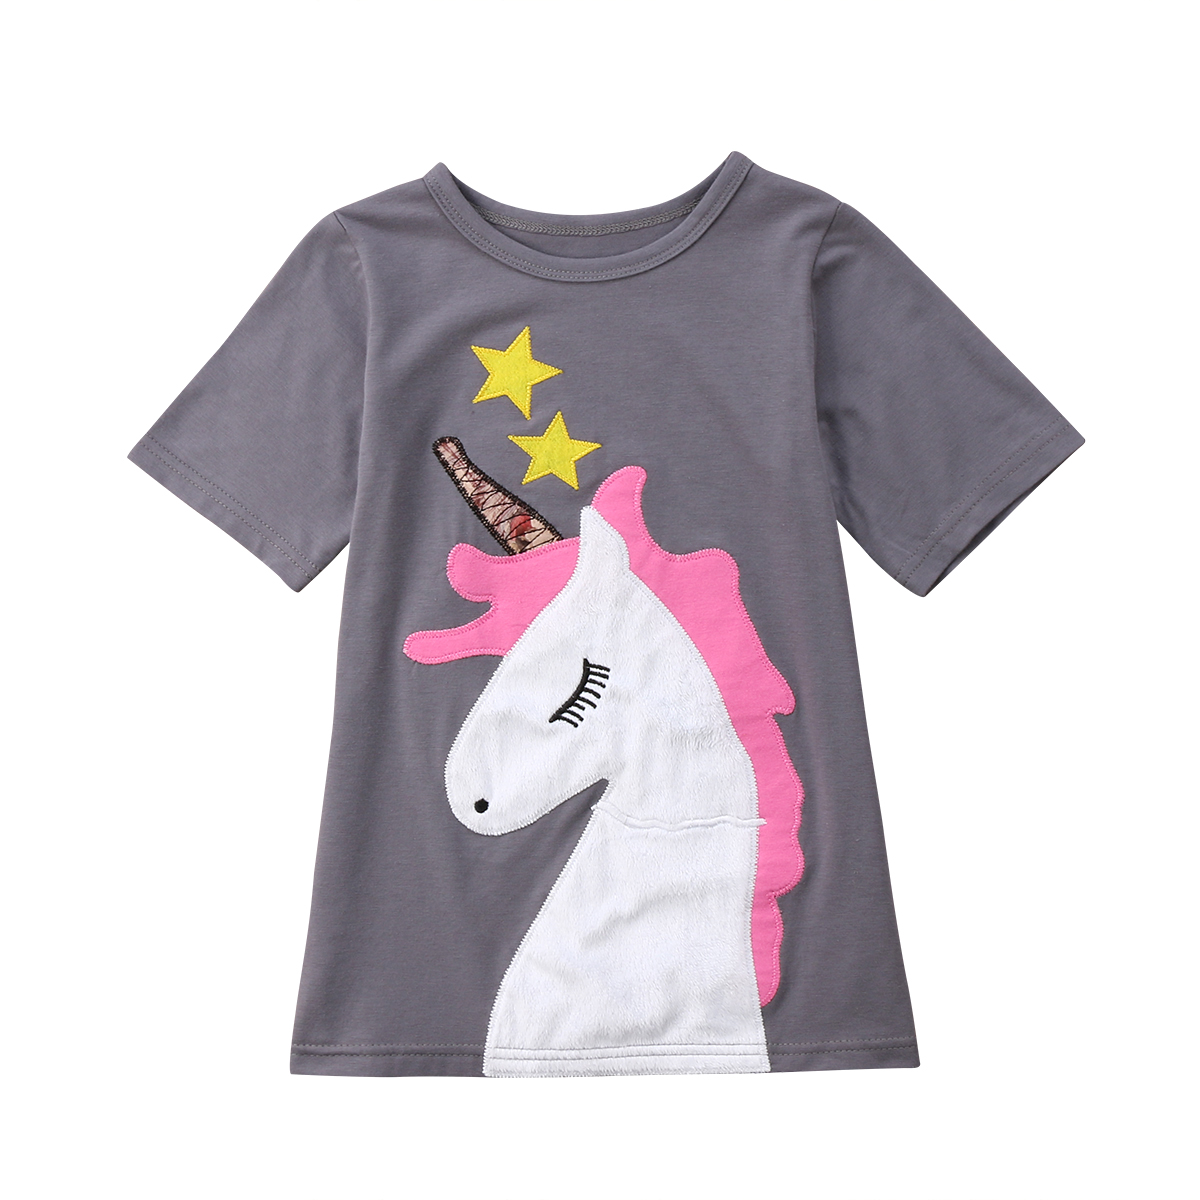 Casual Cotton Kids Baby Girls Dress Summer Gray Animals Unicorn Cotton Casual Brief Sunsuit Dresses Party Girl Clothing 1-6T платье для девочек party dresses for girls baby 2 11 casual girl dress